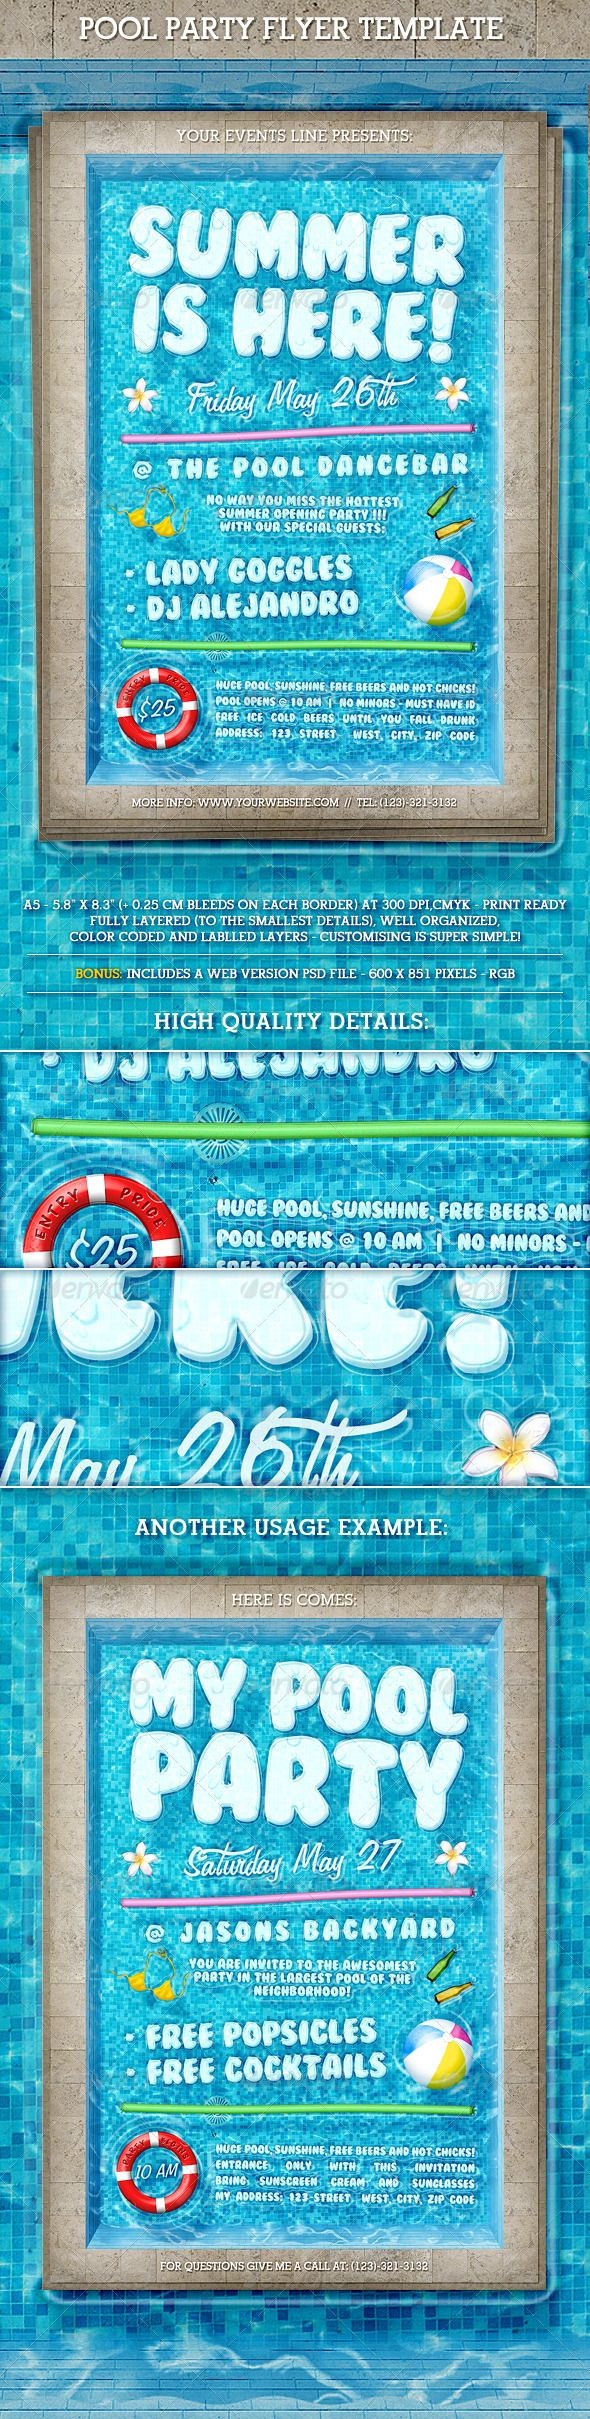 best images about print templates fonts flyer pool party flyer template professional outstandingoutstanding